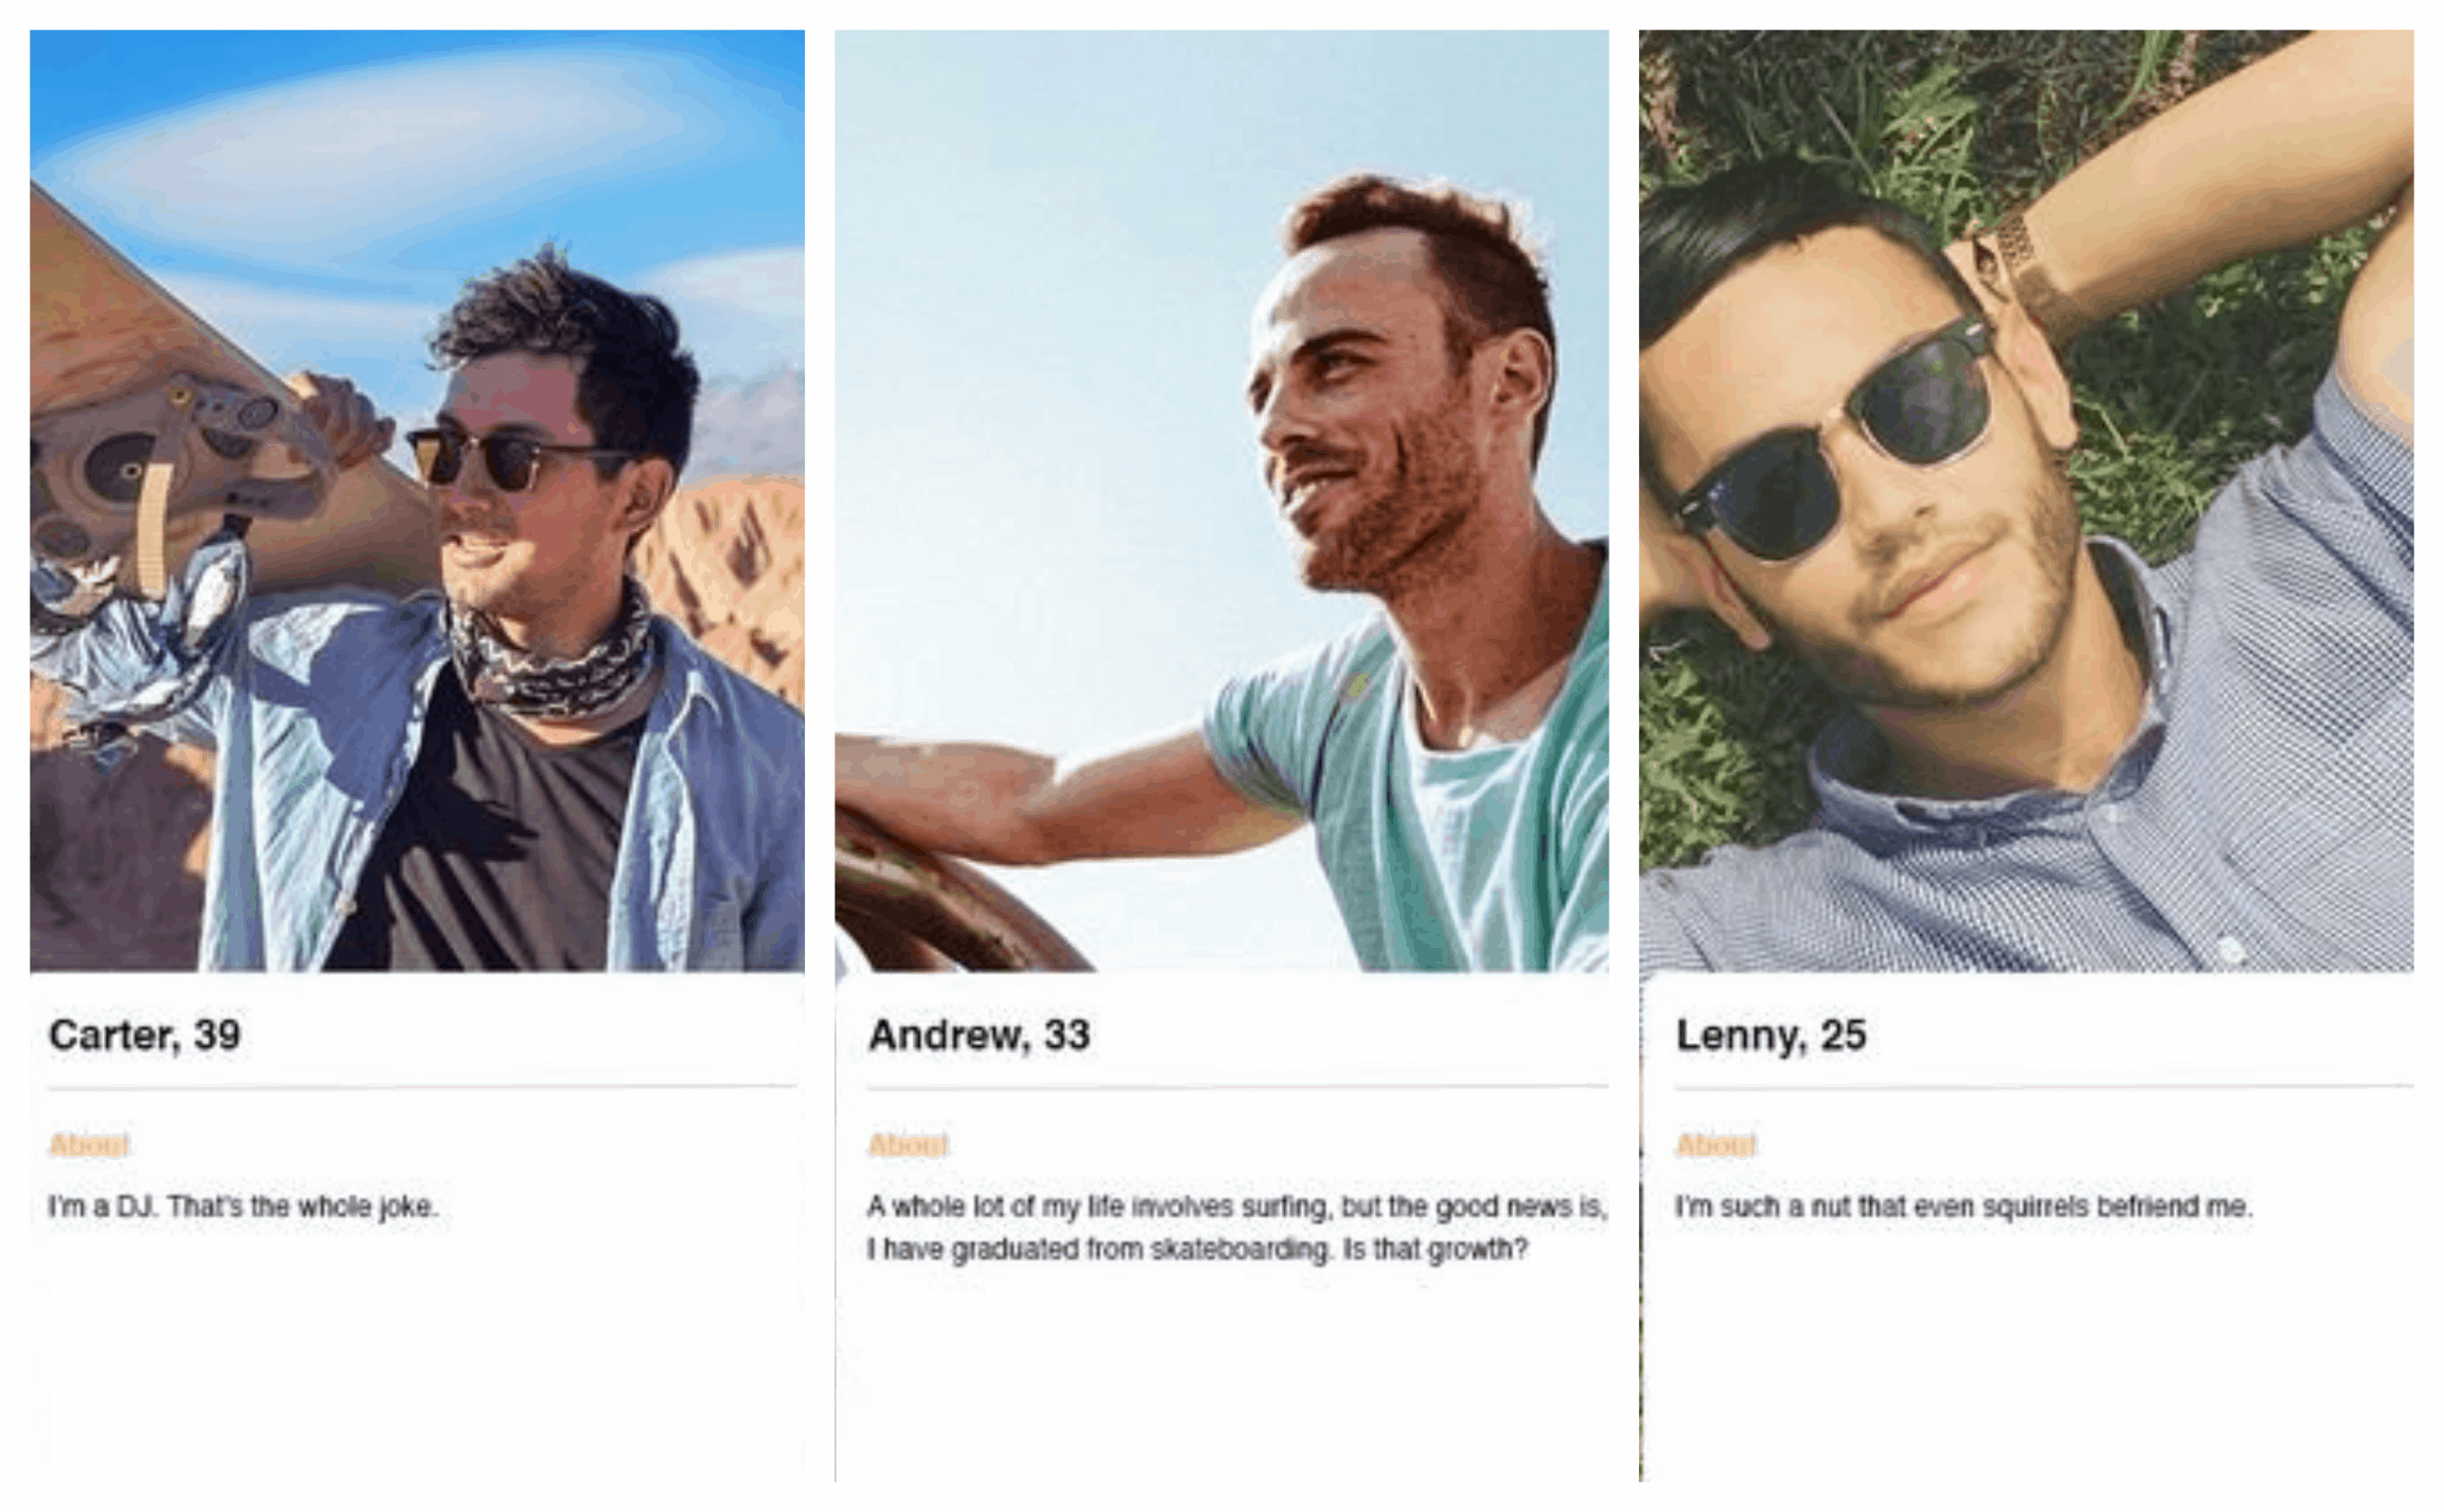 Funny Tinder profile example